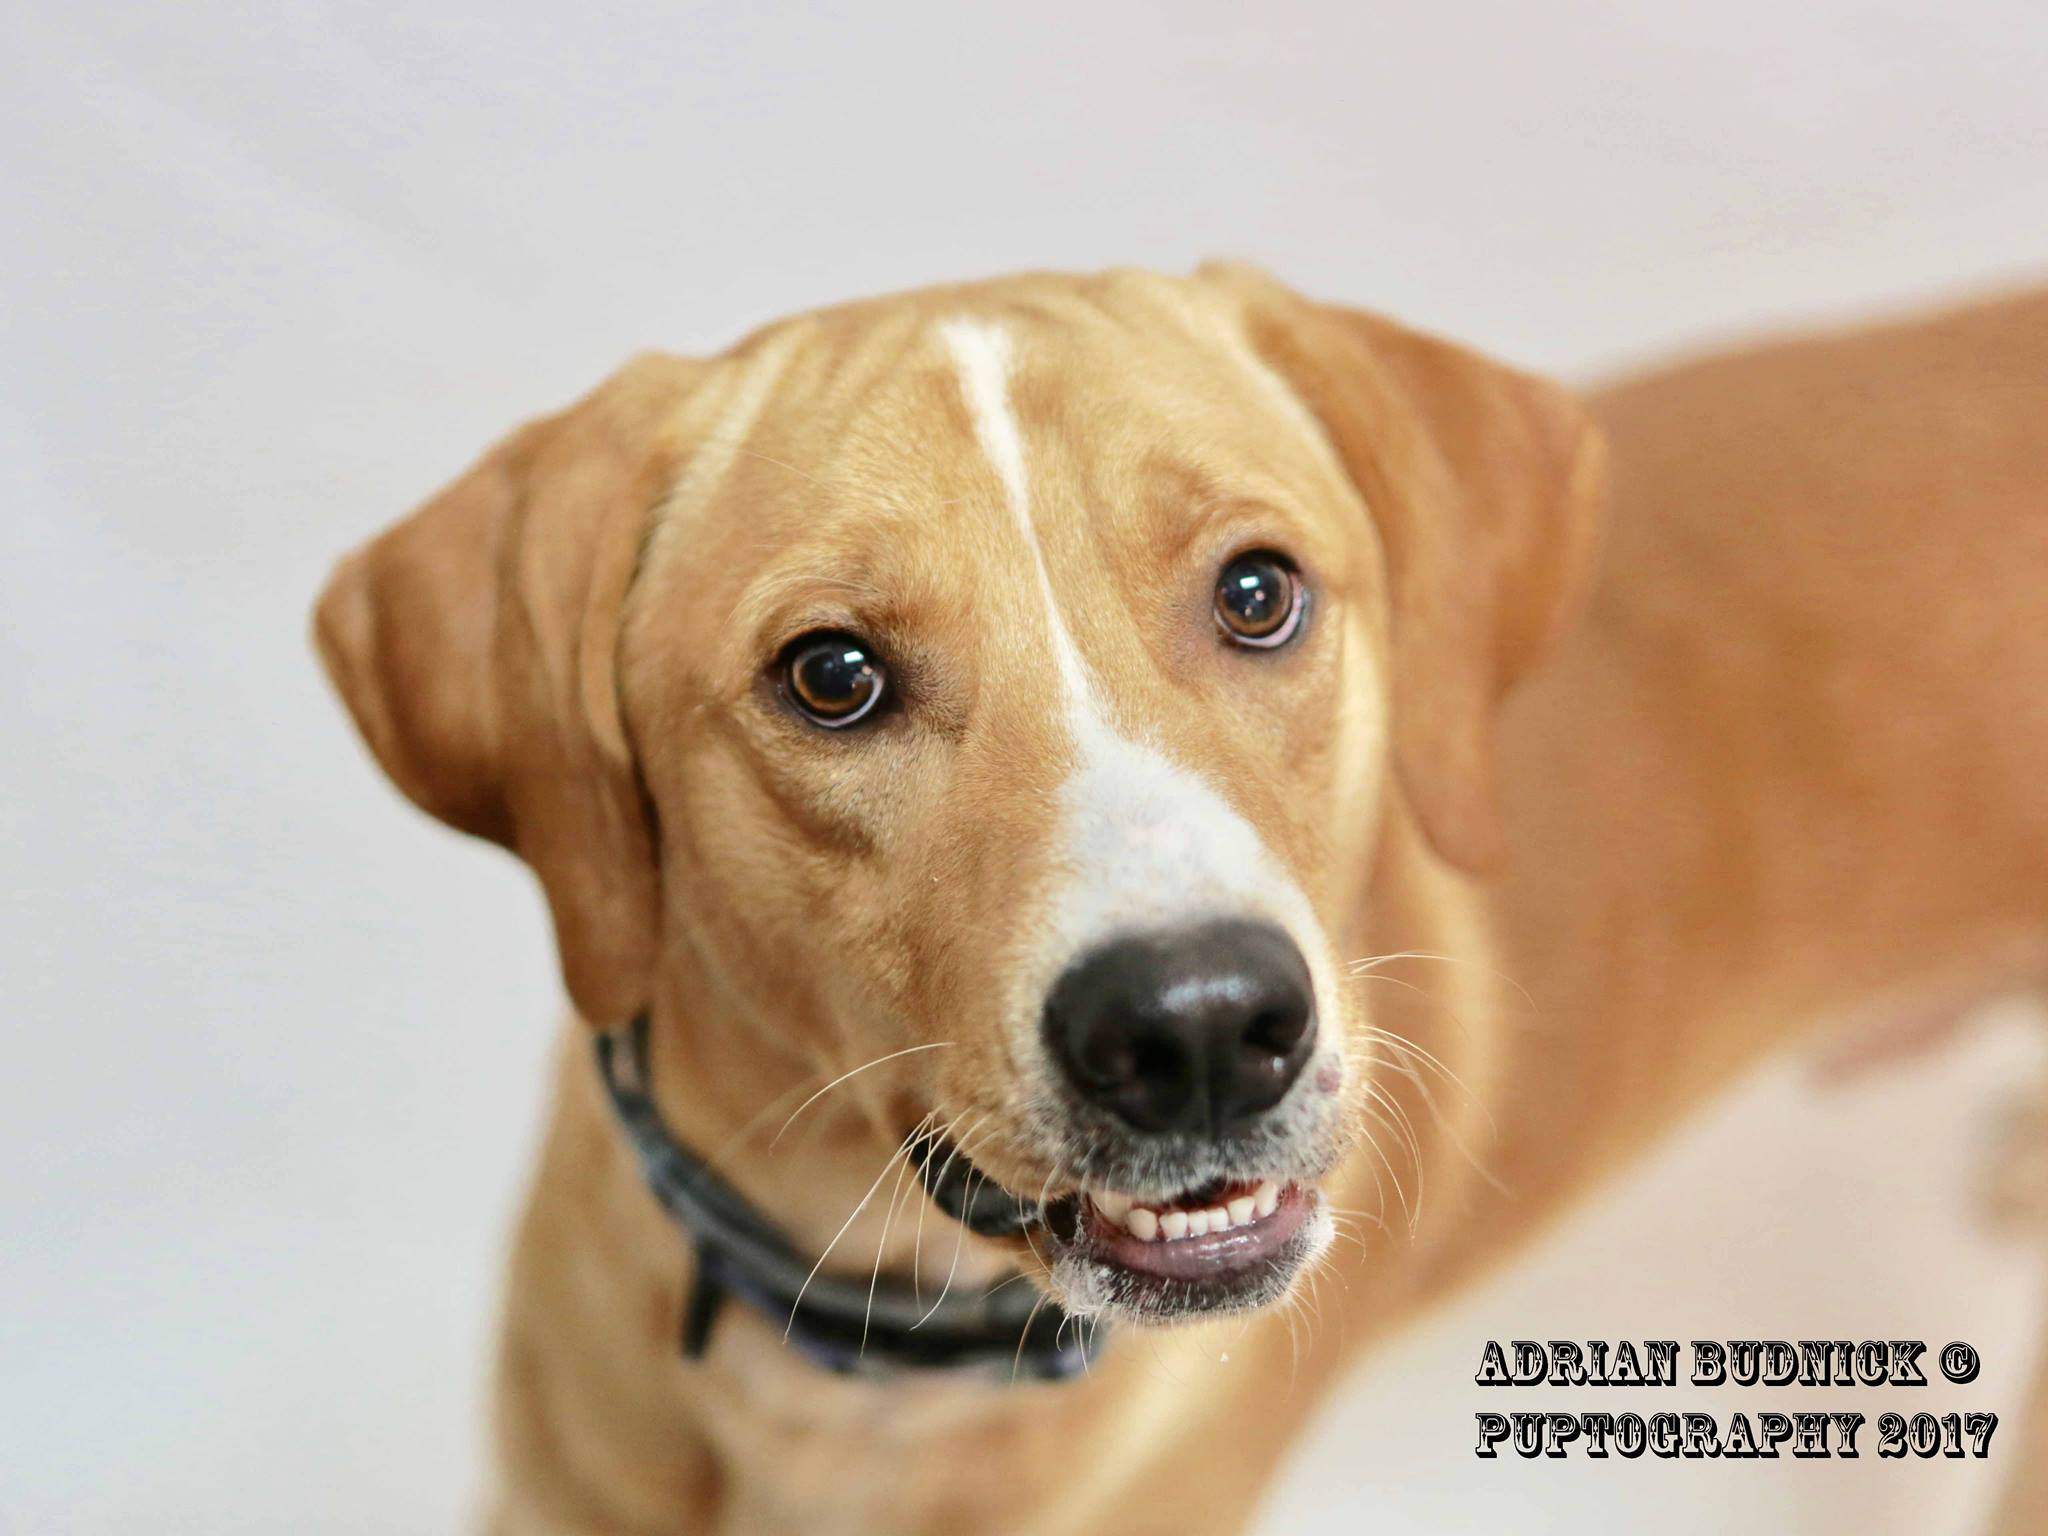 Nelson A176494 is a 1 year old lab mix. He is available at Metro Nashville Animal Care and Control